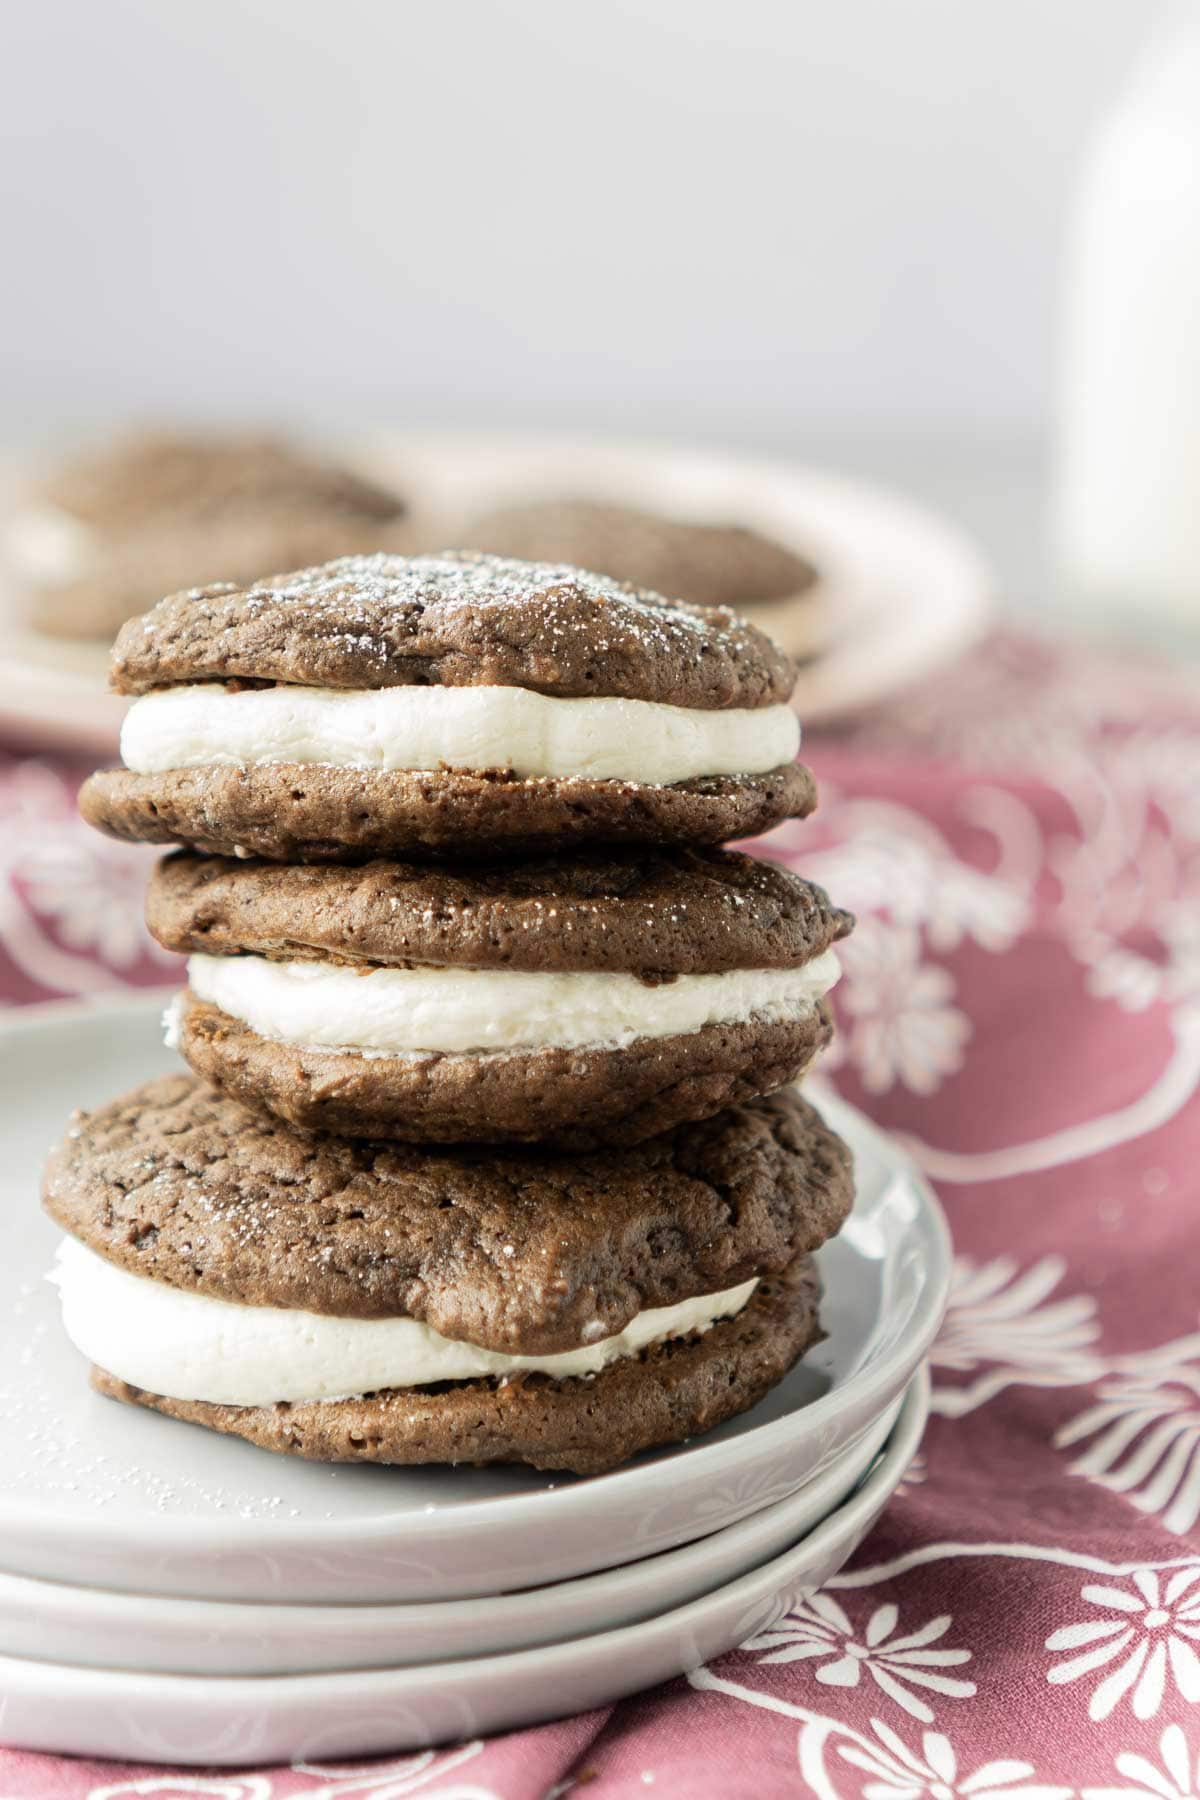 Three chocolate whoopie pies stacked on top of each other